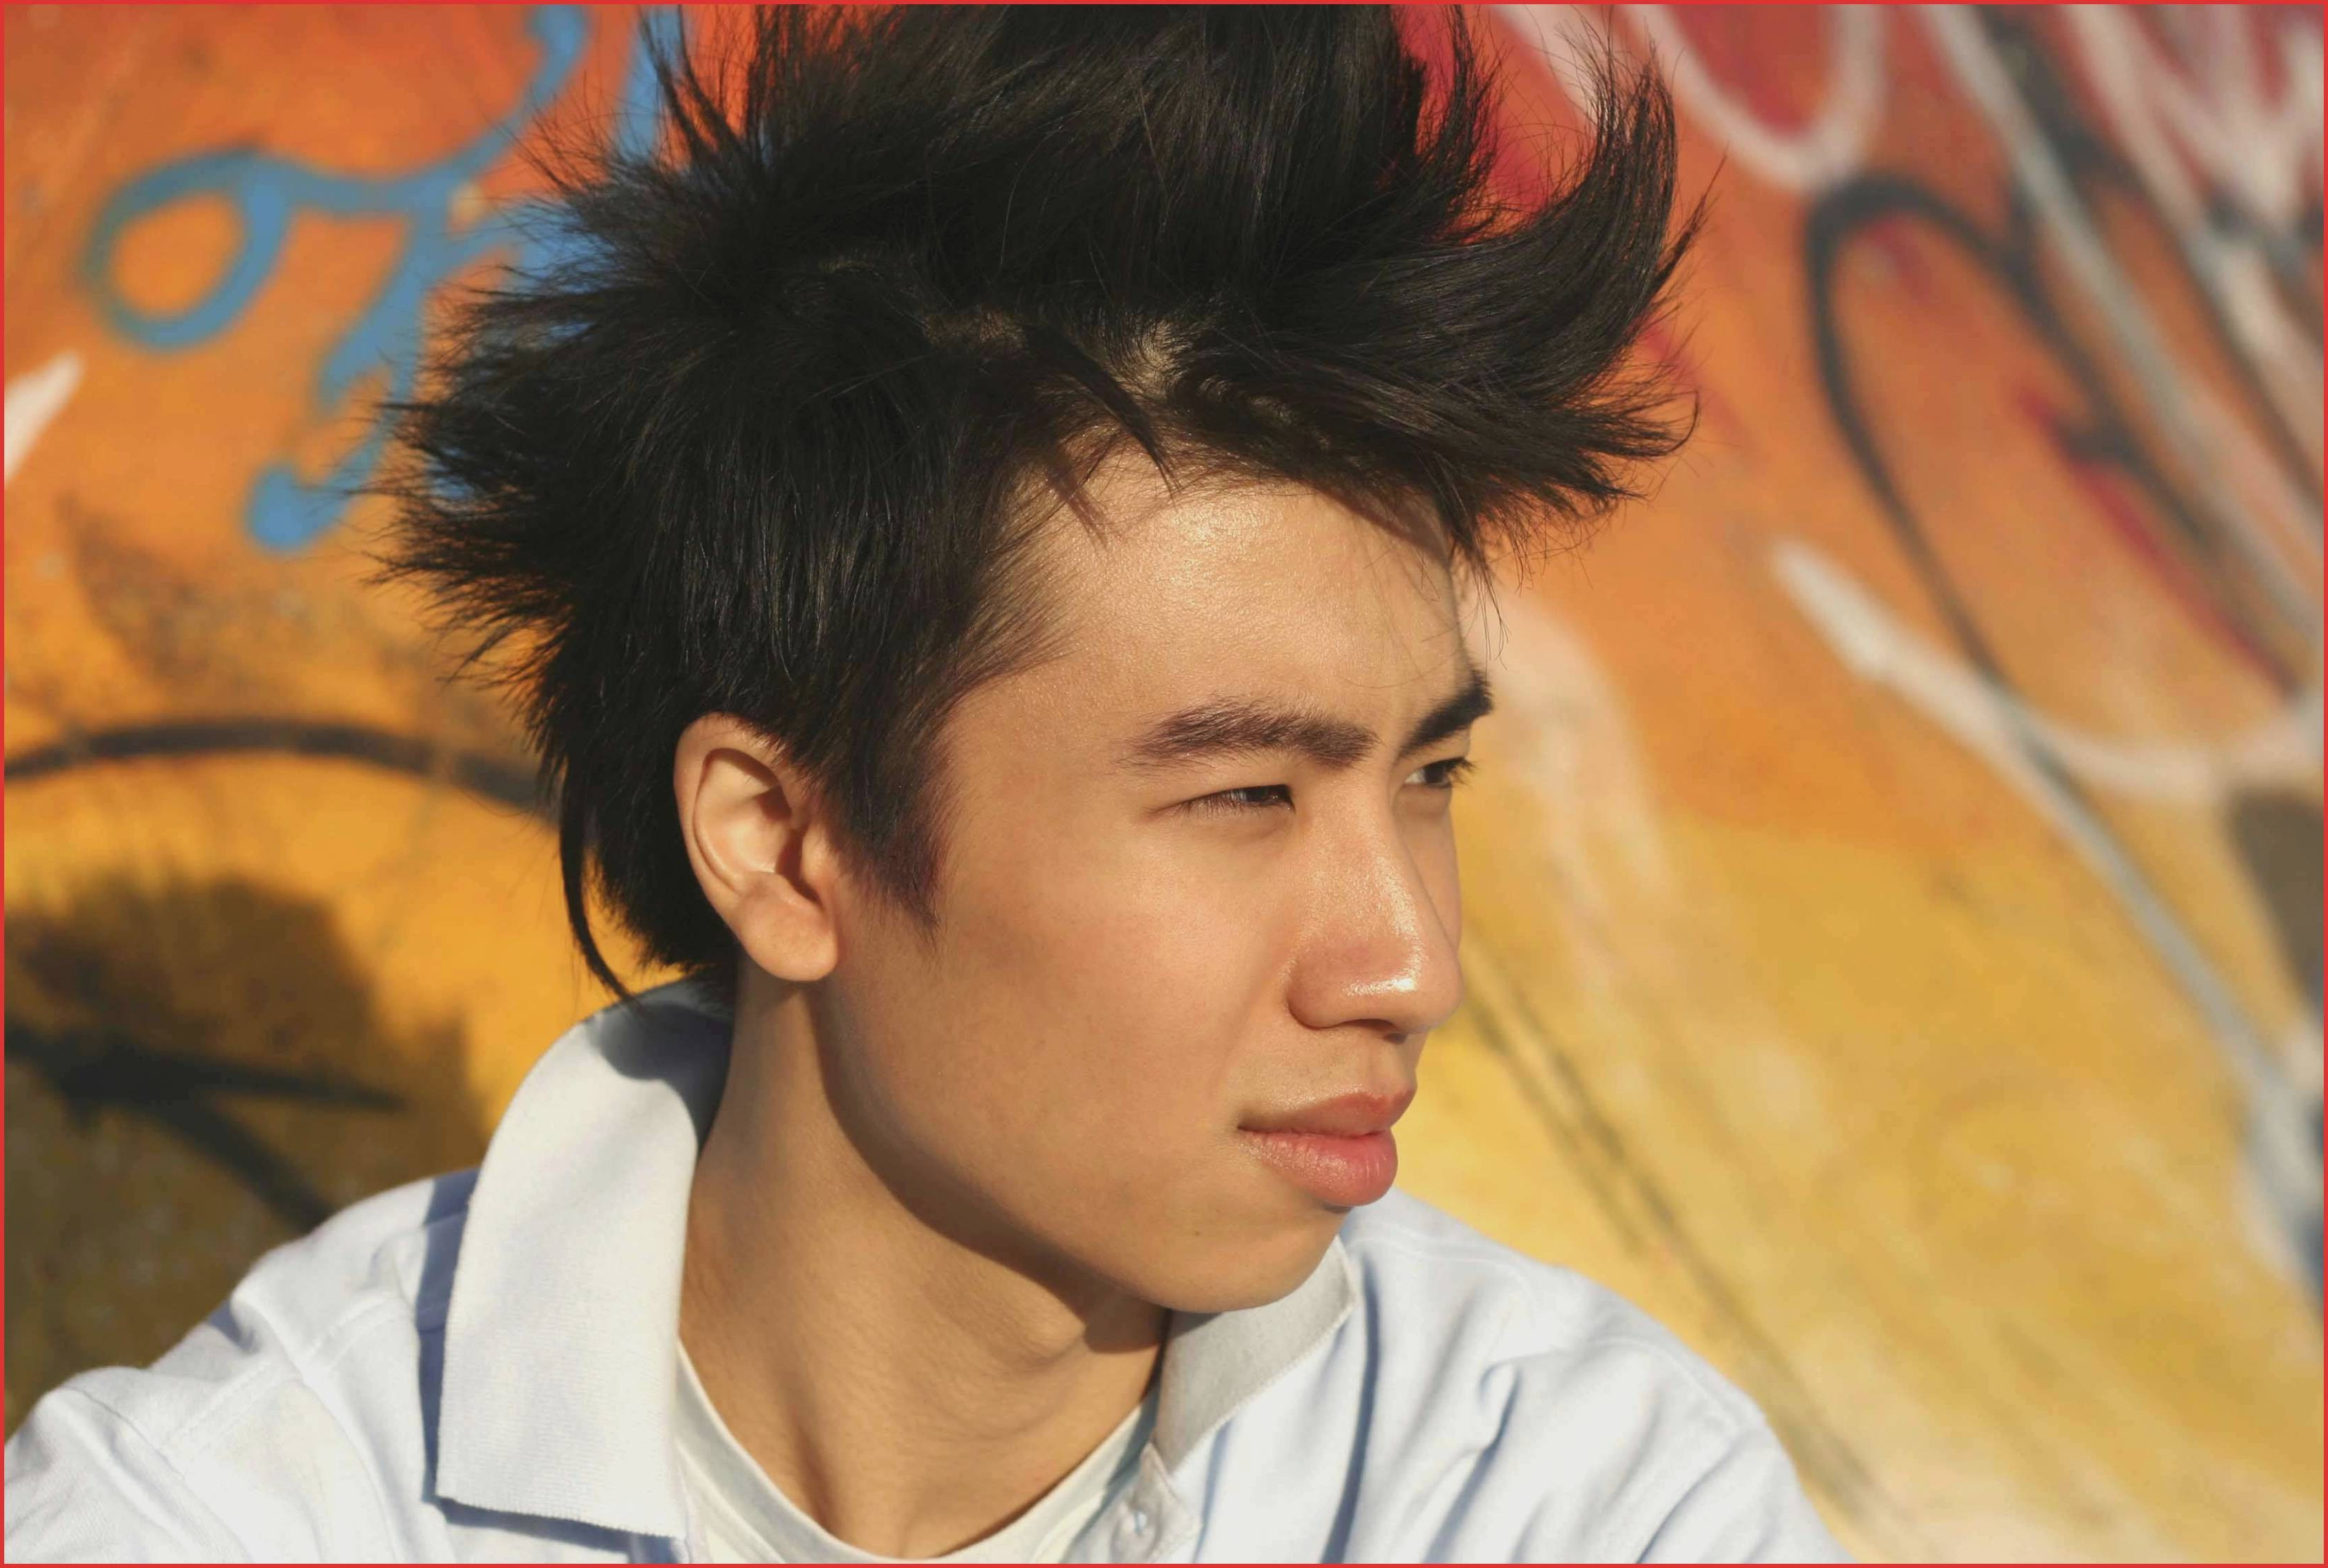 Short Hairstyles For Male Round Faces Inspirational Hairstyles For Regarding Short Hairstyles For A Square Face (View 13 of 25)